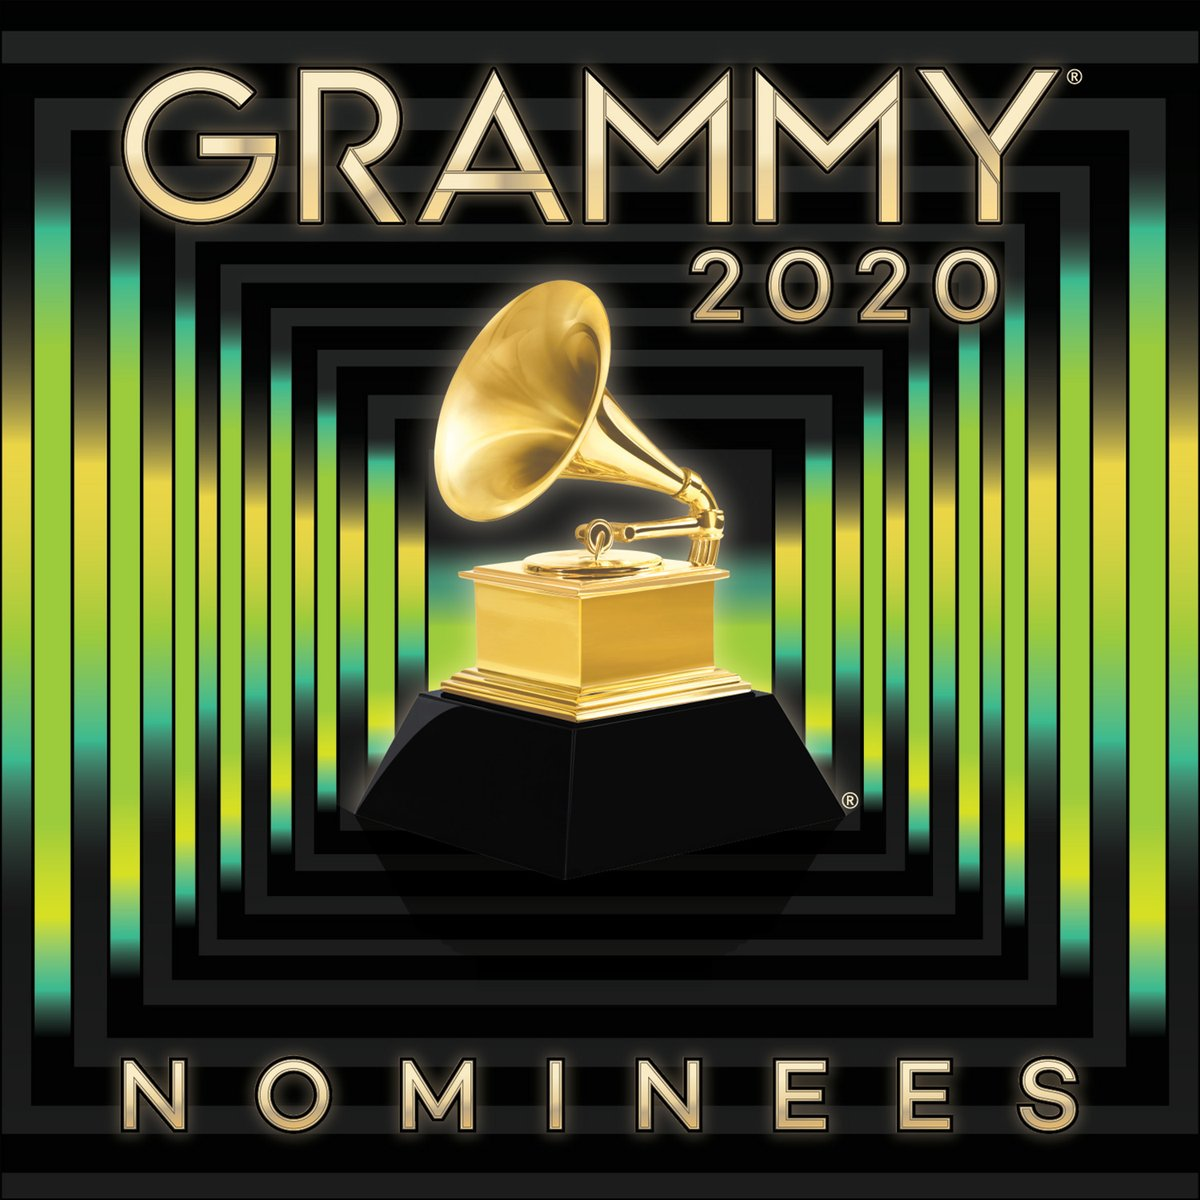 Want to win a trip for two to the 2020 #GRAMMYs? Enter at 2020grammyalbum.com and dont forget to pre-order the official GRAMMYs Nominees album!